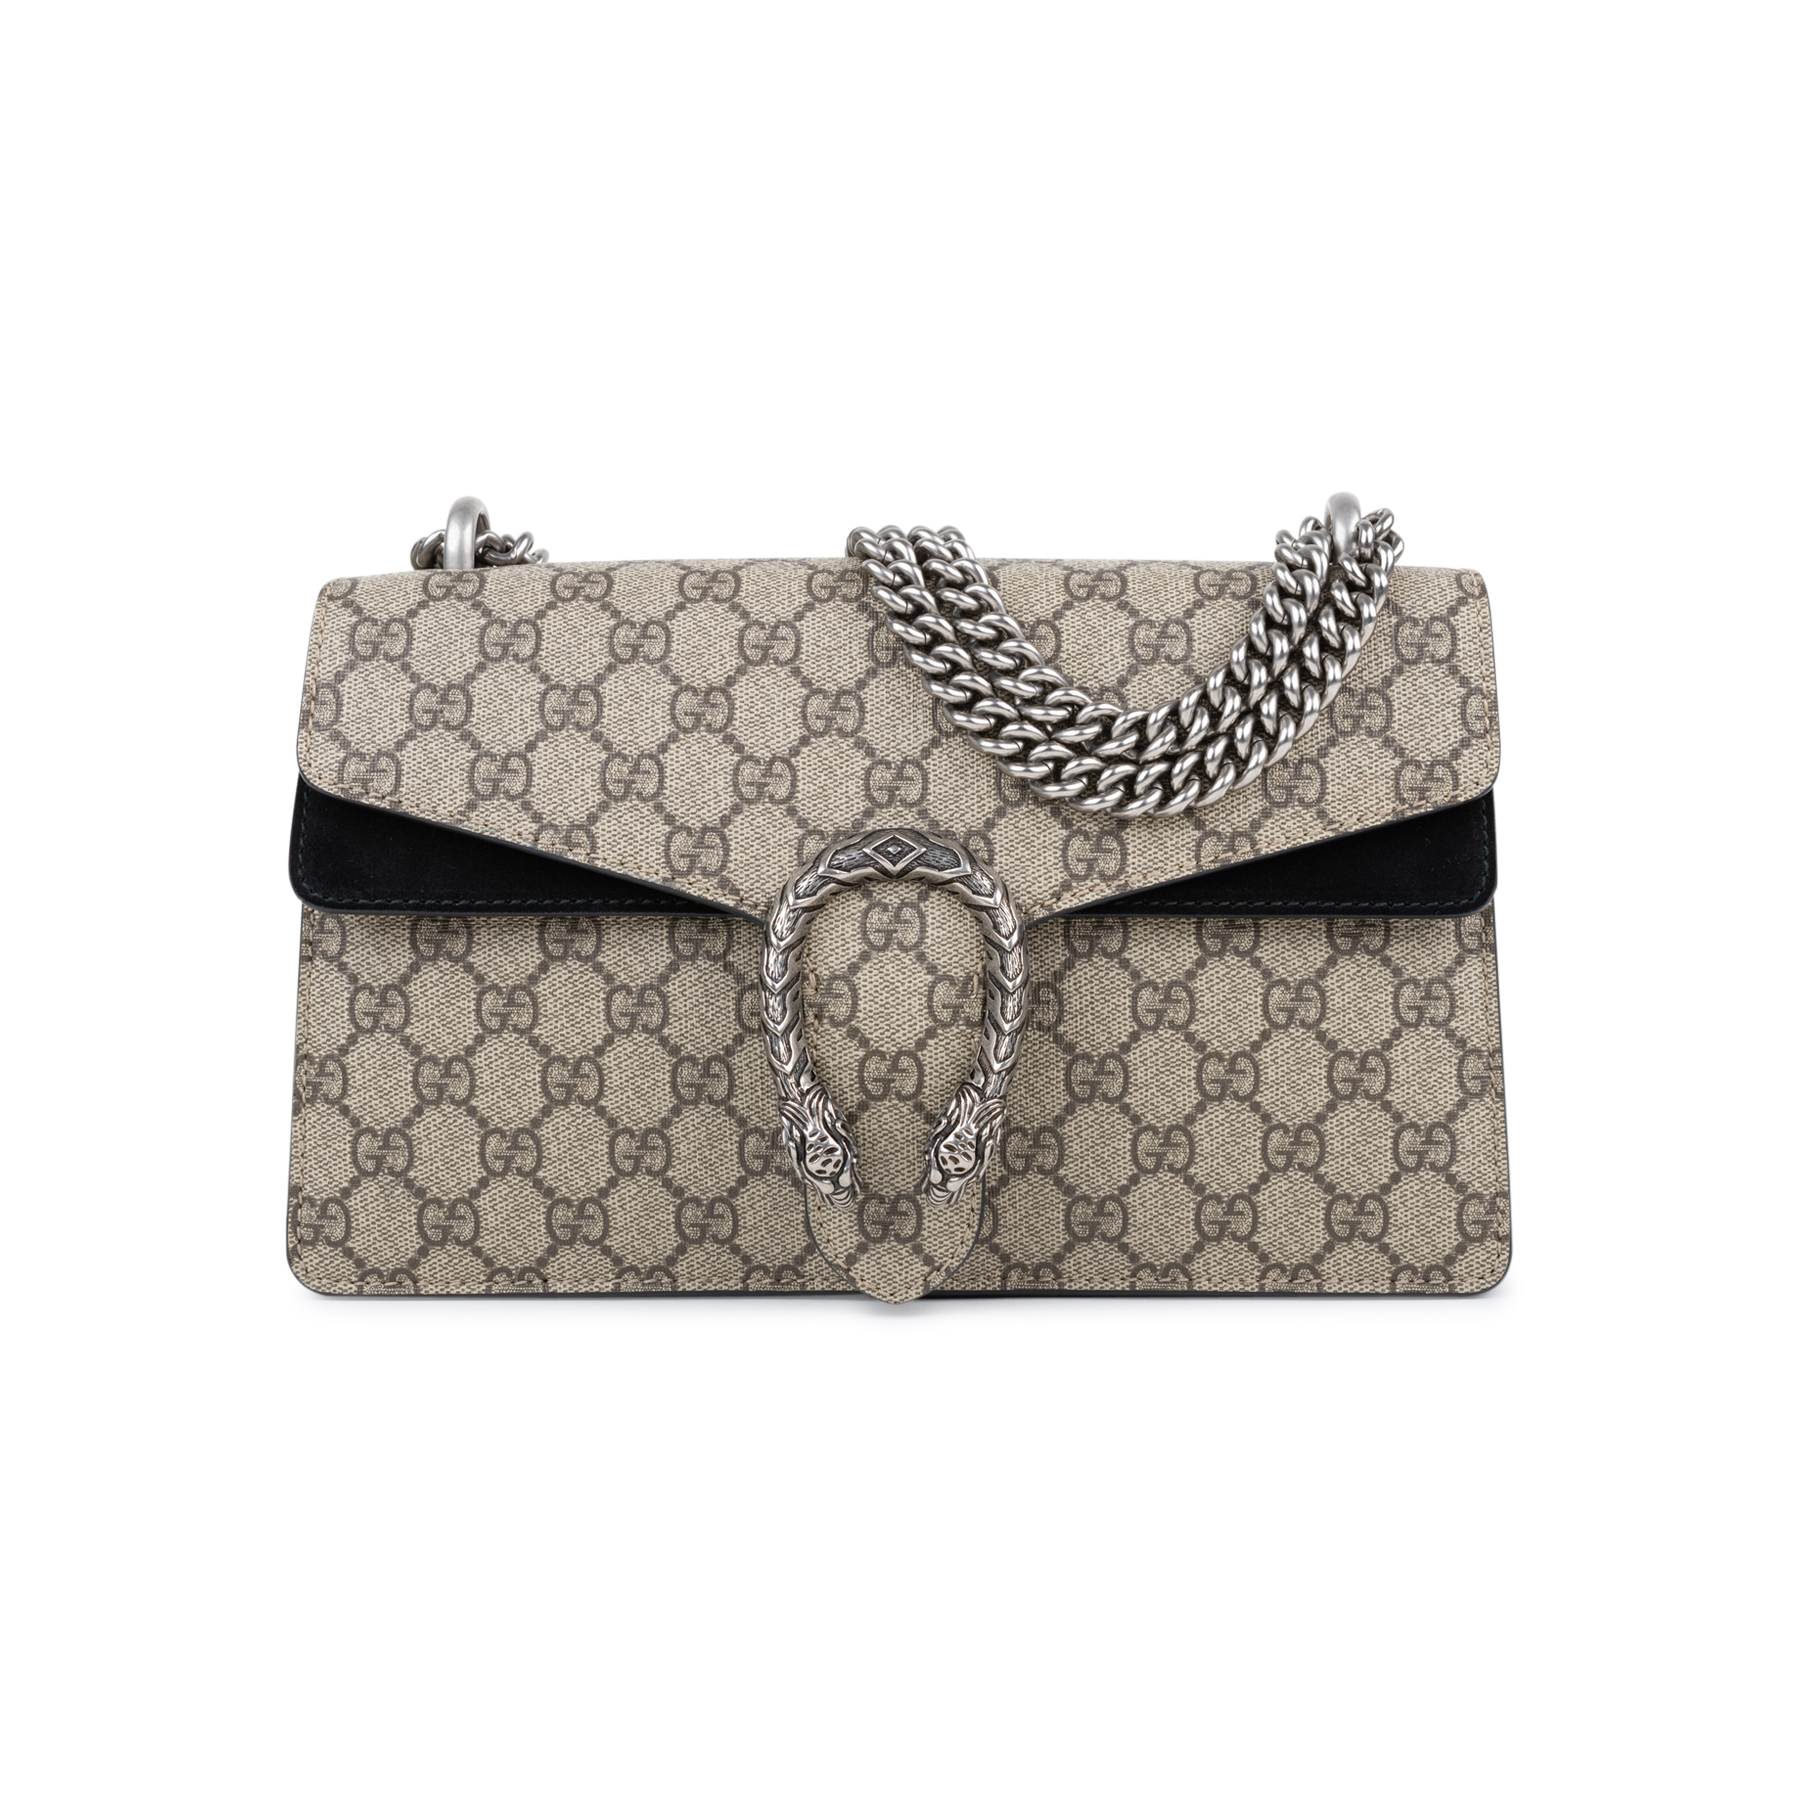 39cc9a2b559347 Authentic Second Hand Gucci Dionysus GG Supreme Medium Bag (PSS-588-00010)  | THE FIFTH COLLECTION